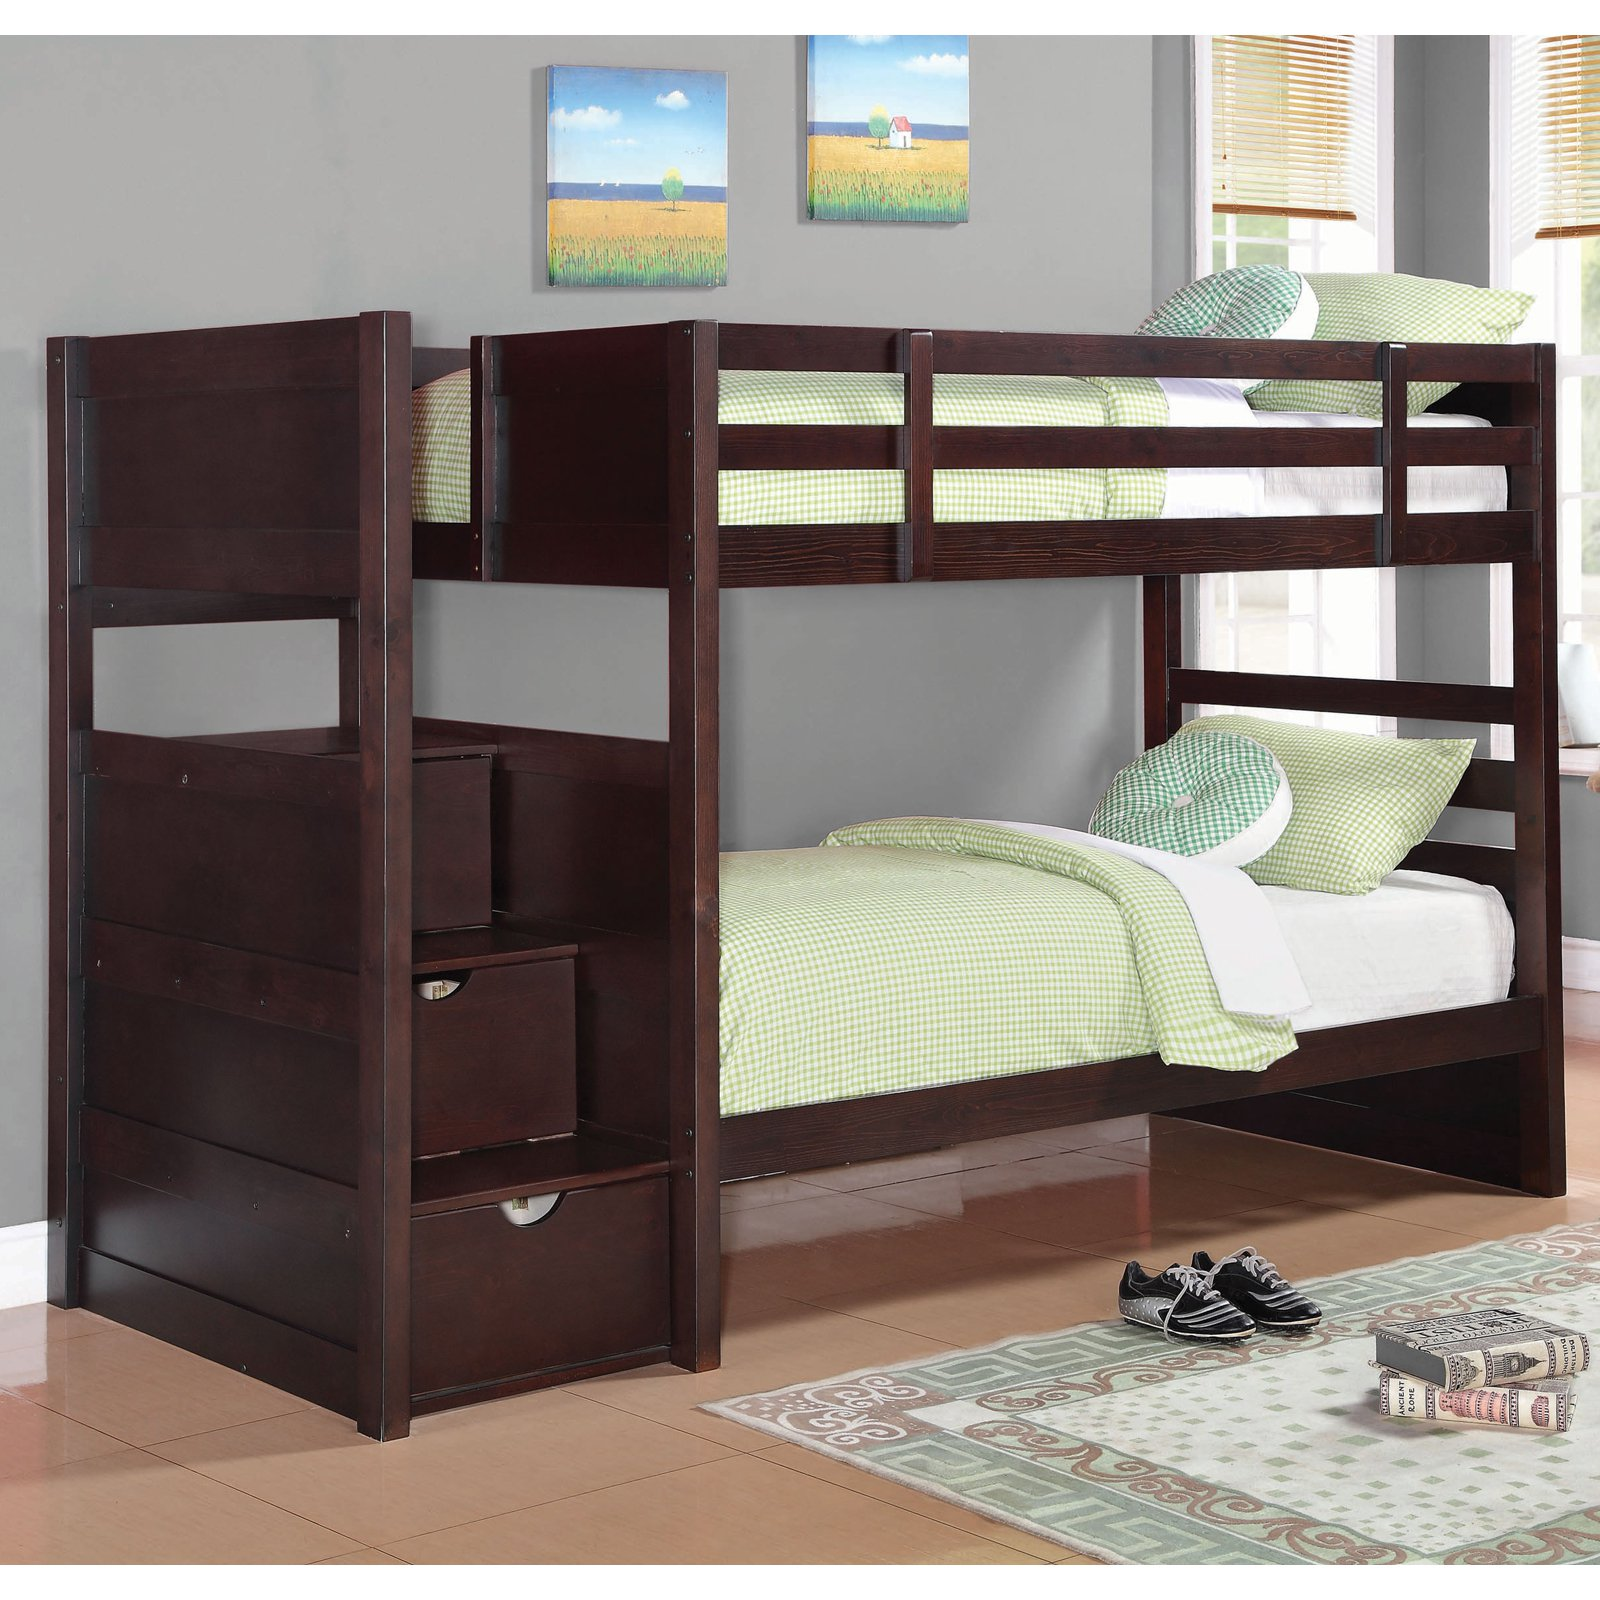 Coaster Furniture Elliott Twin Bunk Bed With Staircase Drawers   Cappuccino